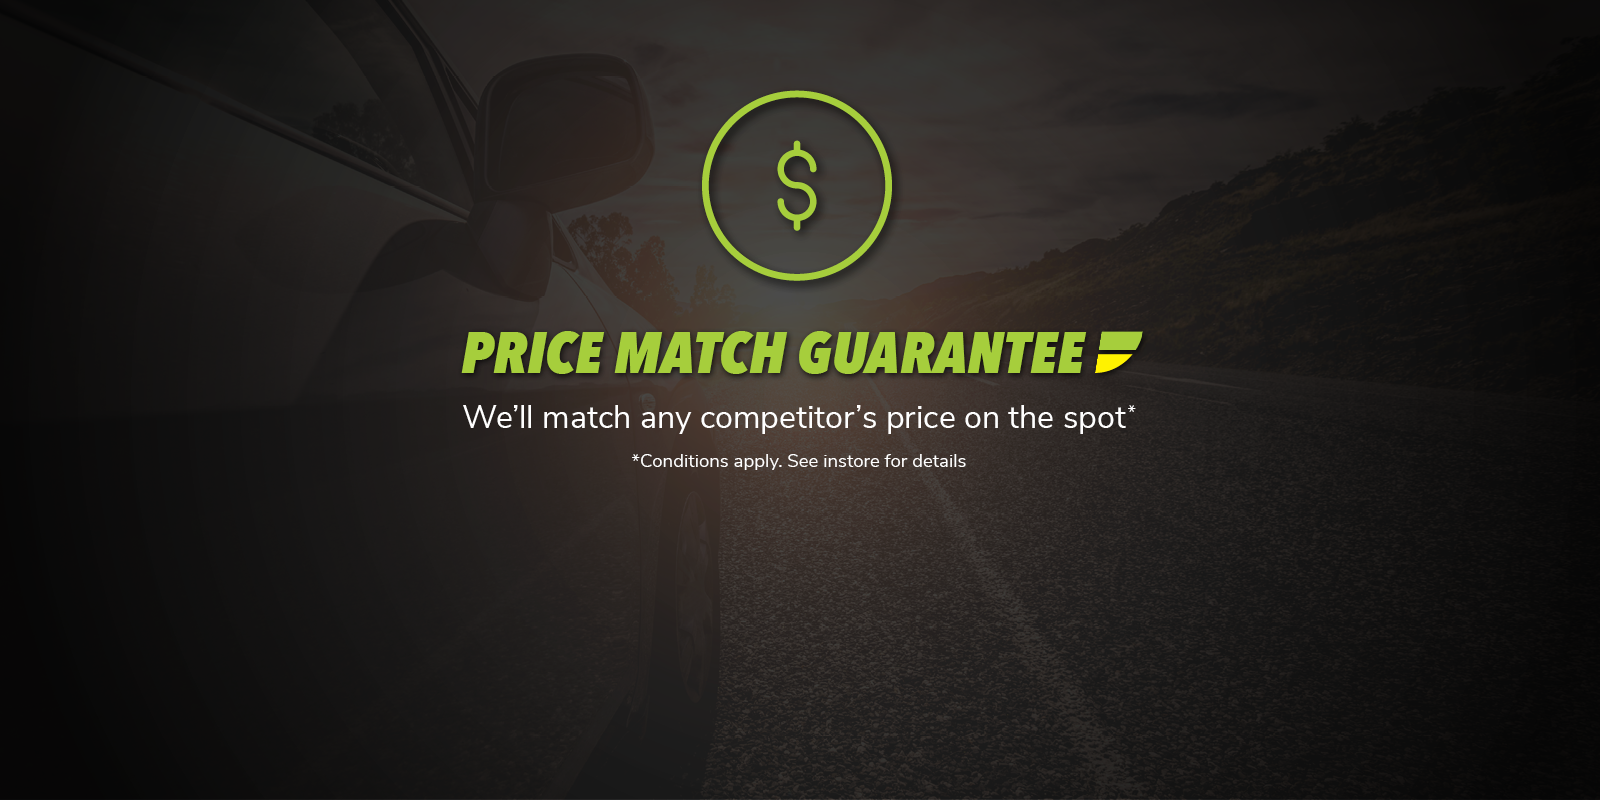 We Can Price Match